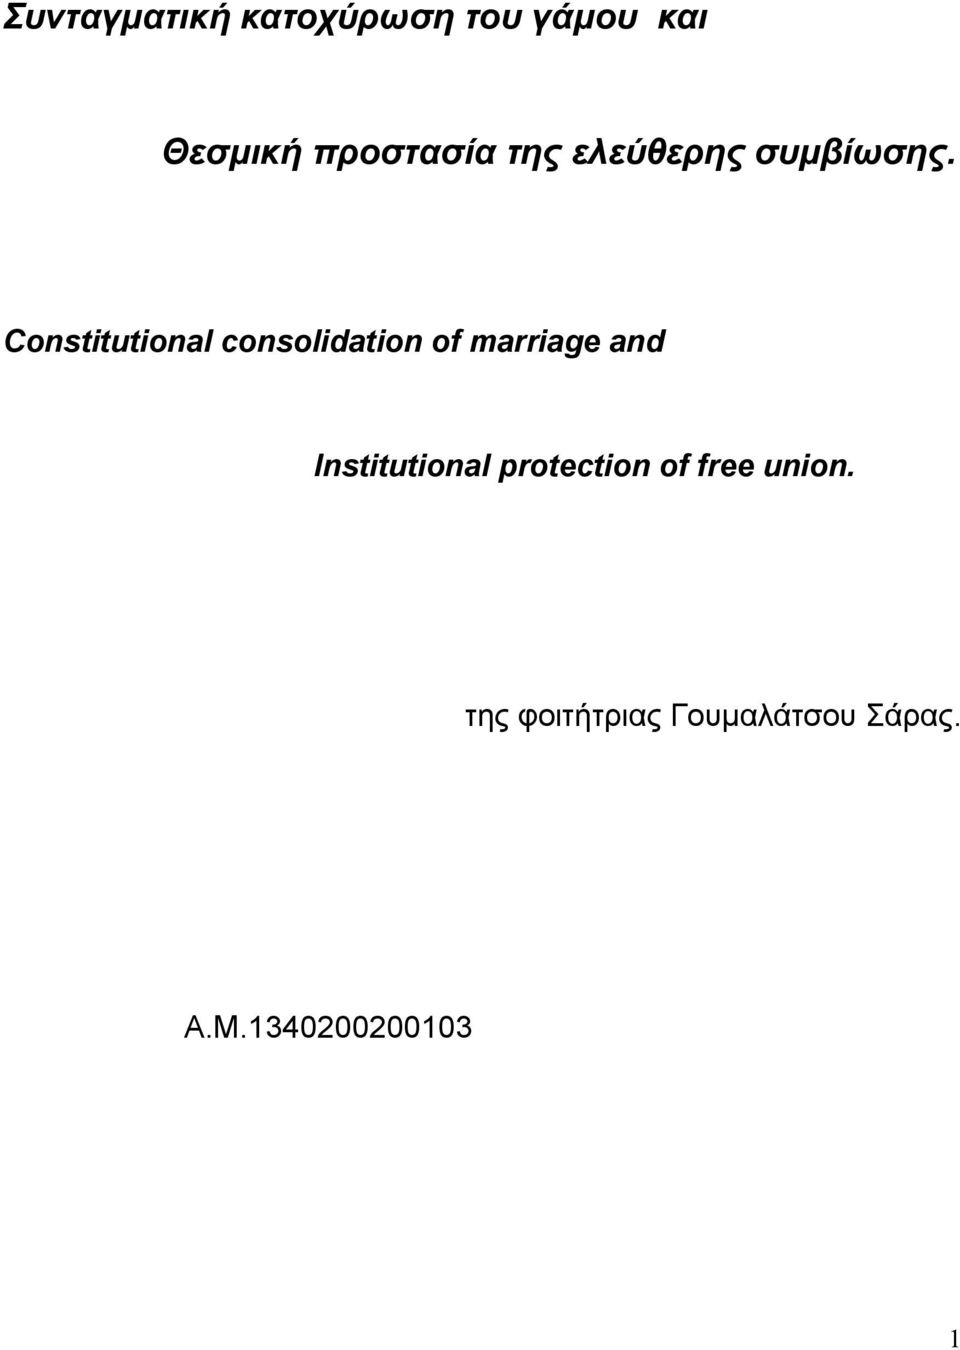 Constitutional consolidation of marriage and